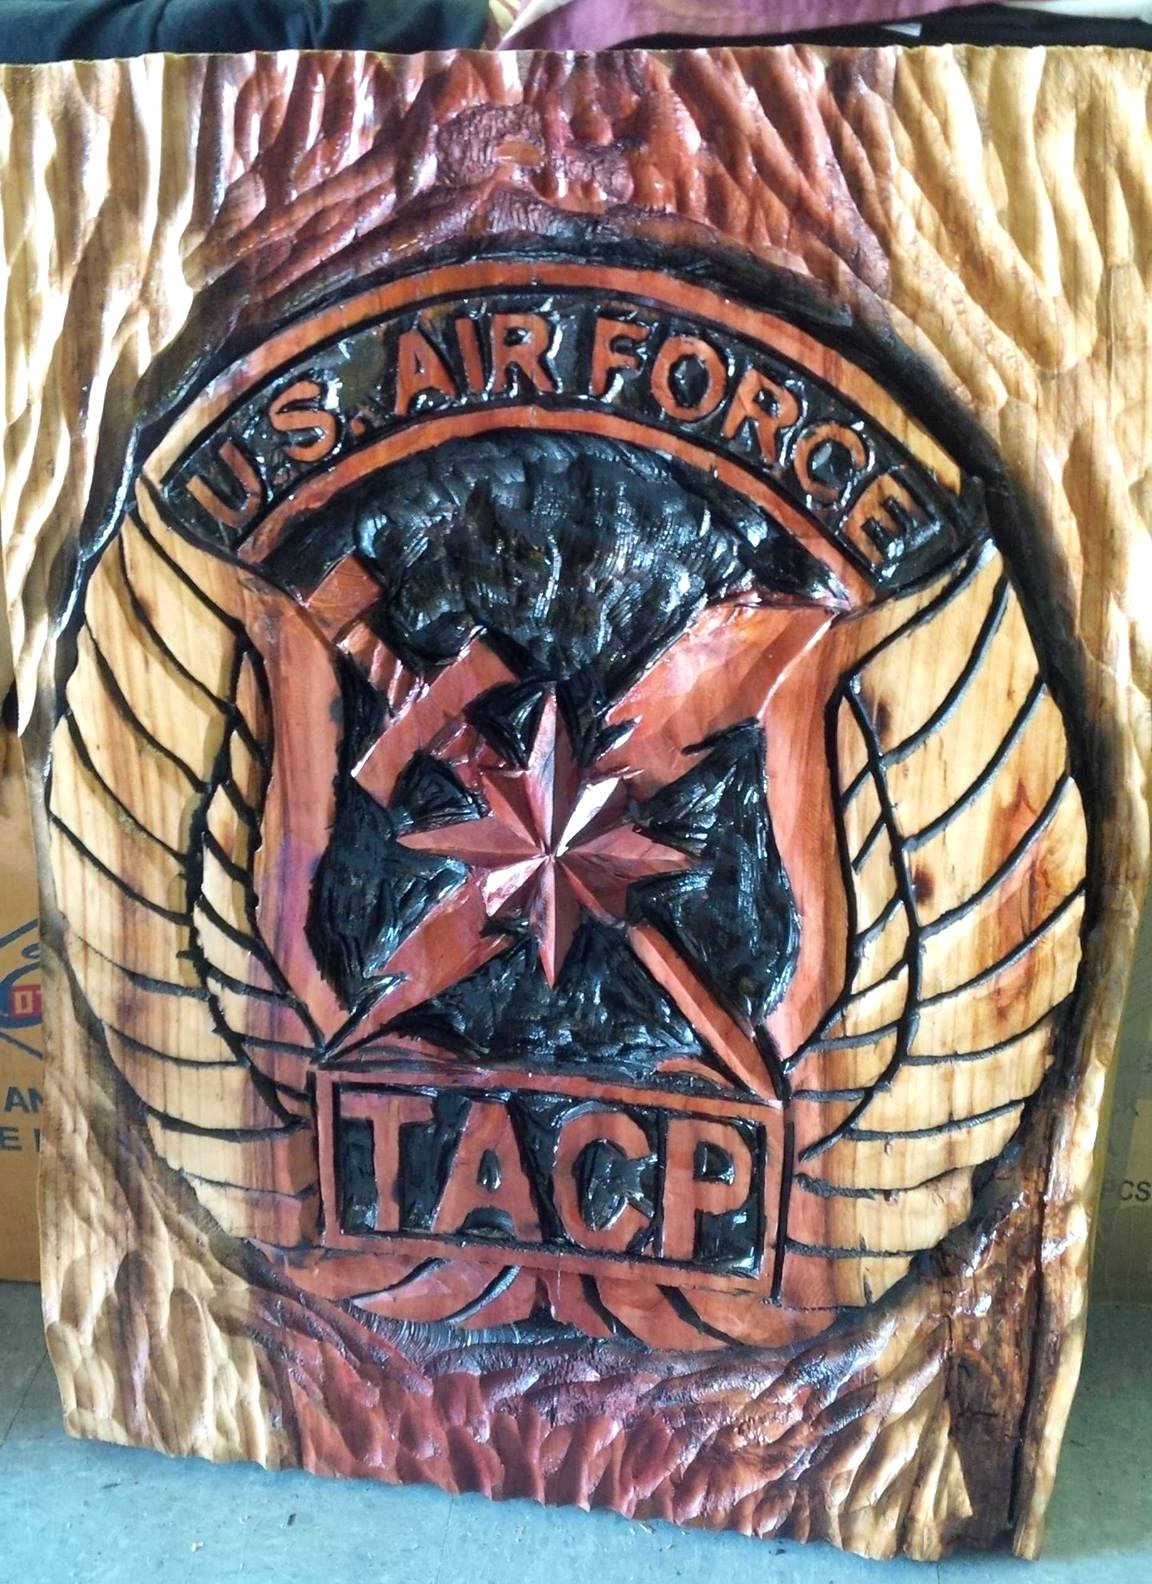 2014-05-13-TACP-Chainsaw-Carved-Air-Force-Seal-1.jpg